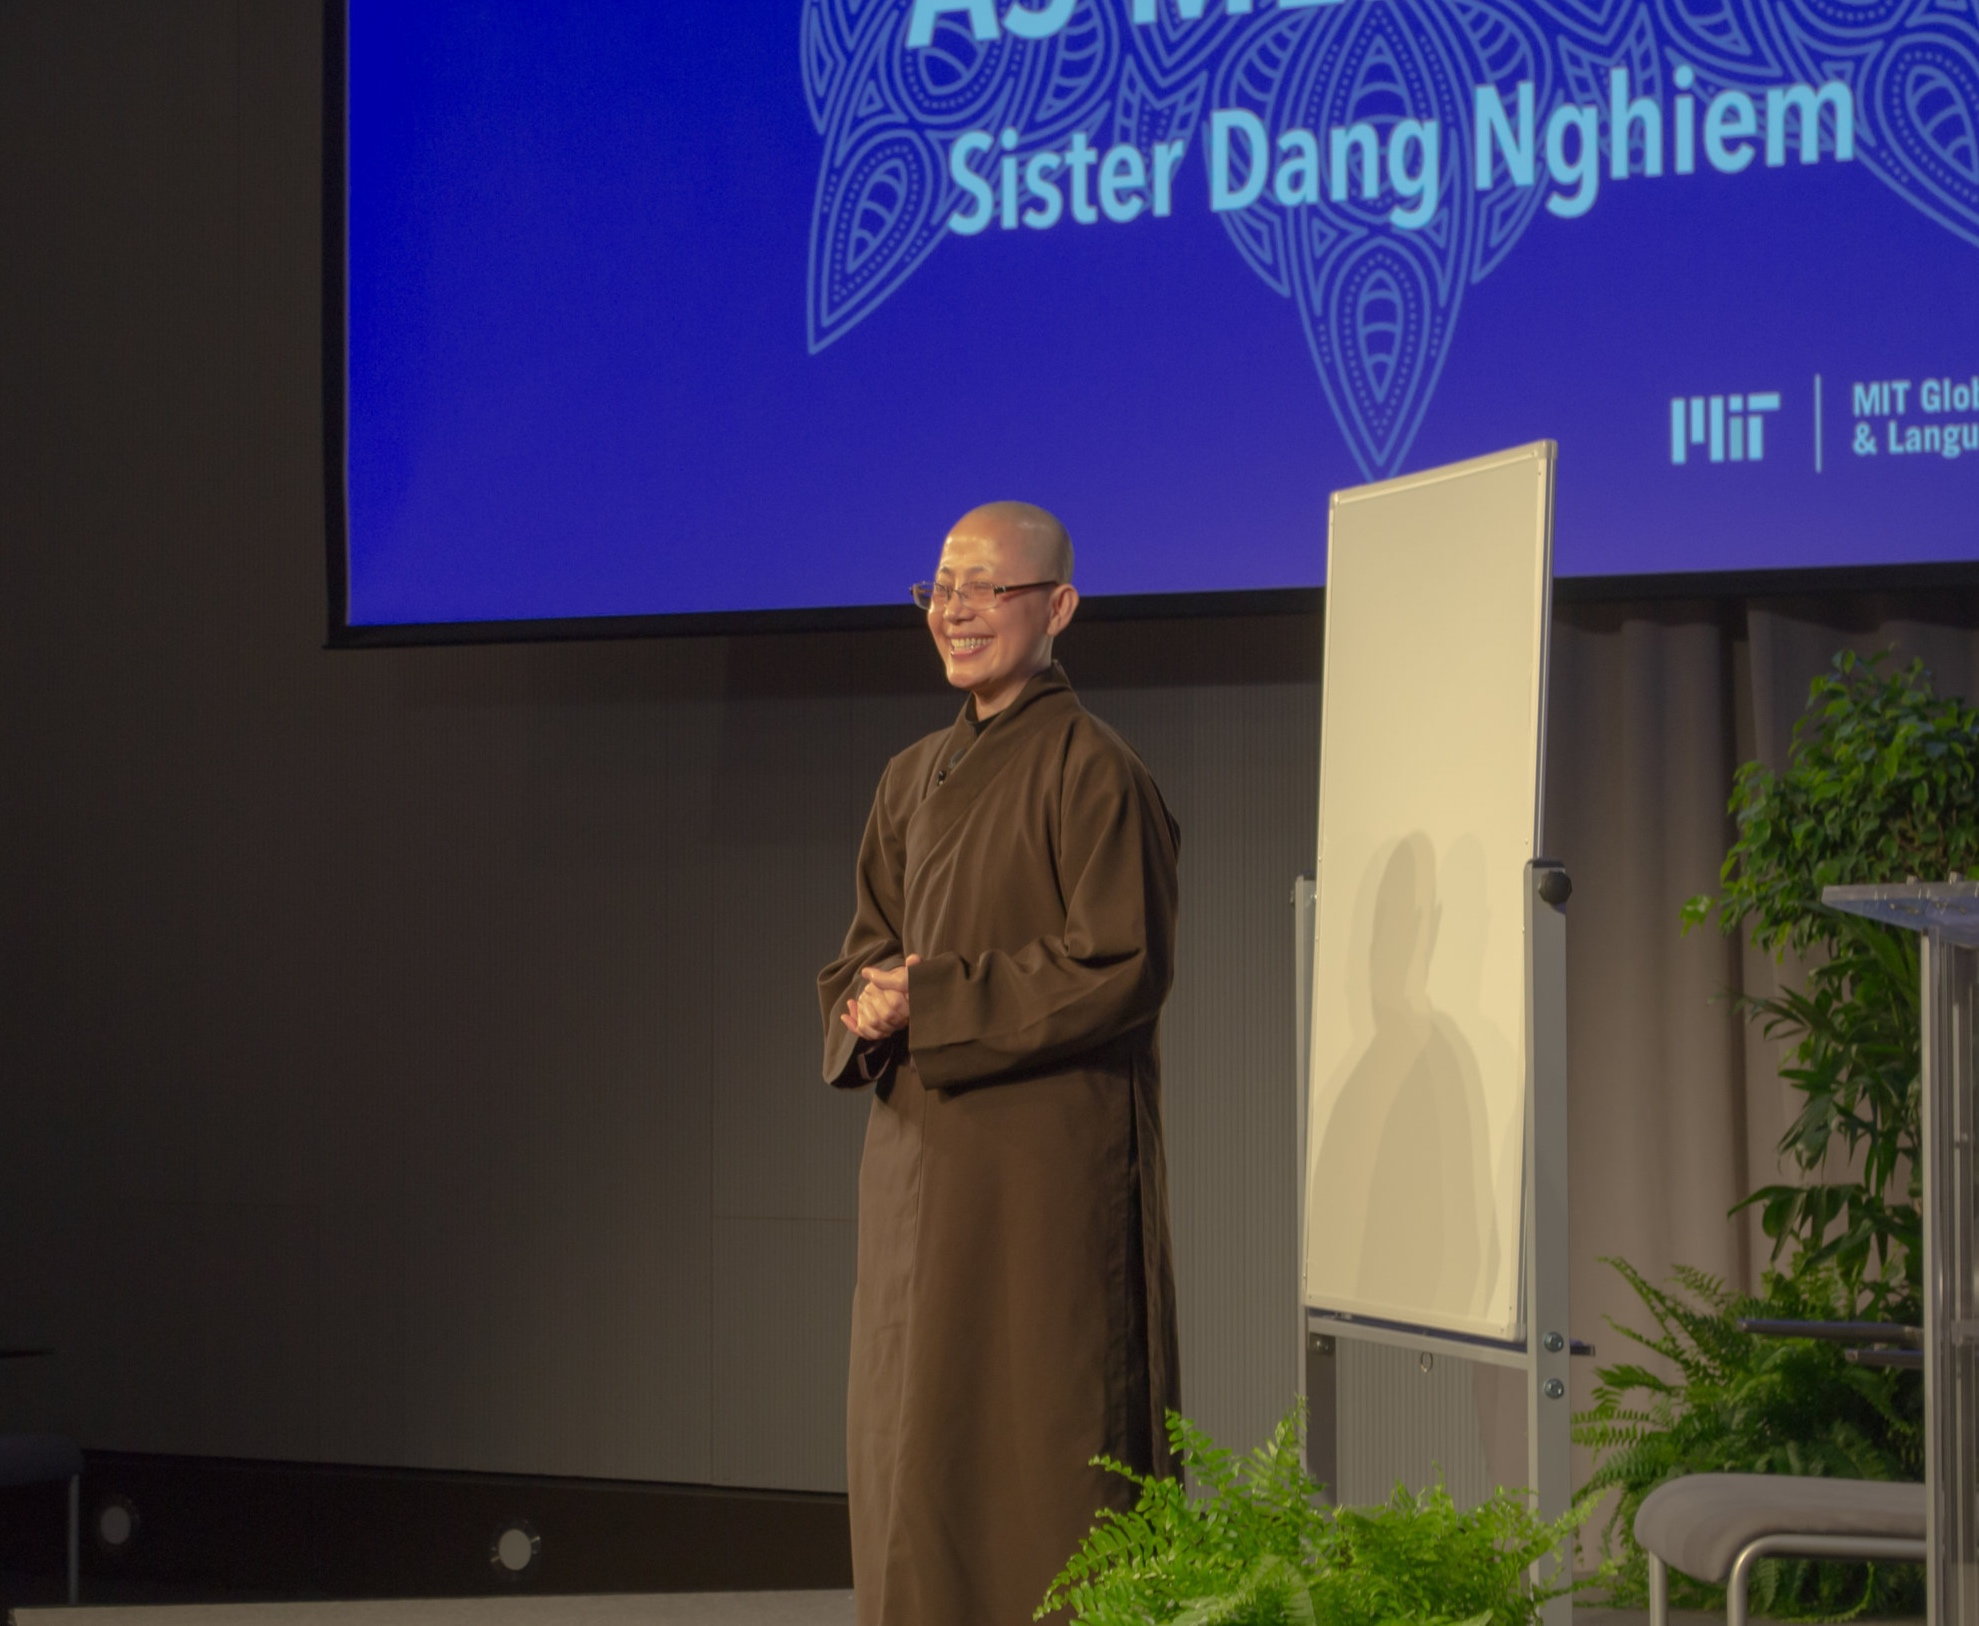 Sister Dang Nghiem - Lecture and Walking Meditation, March 7-8, 2019